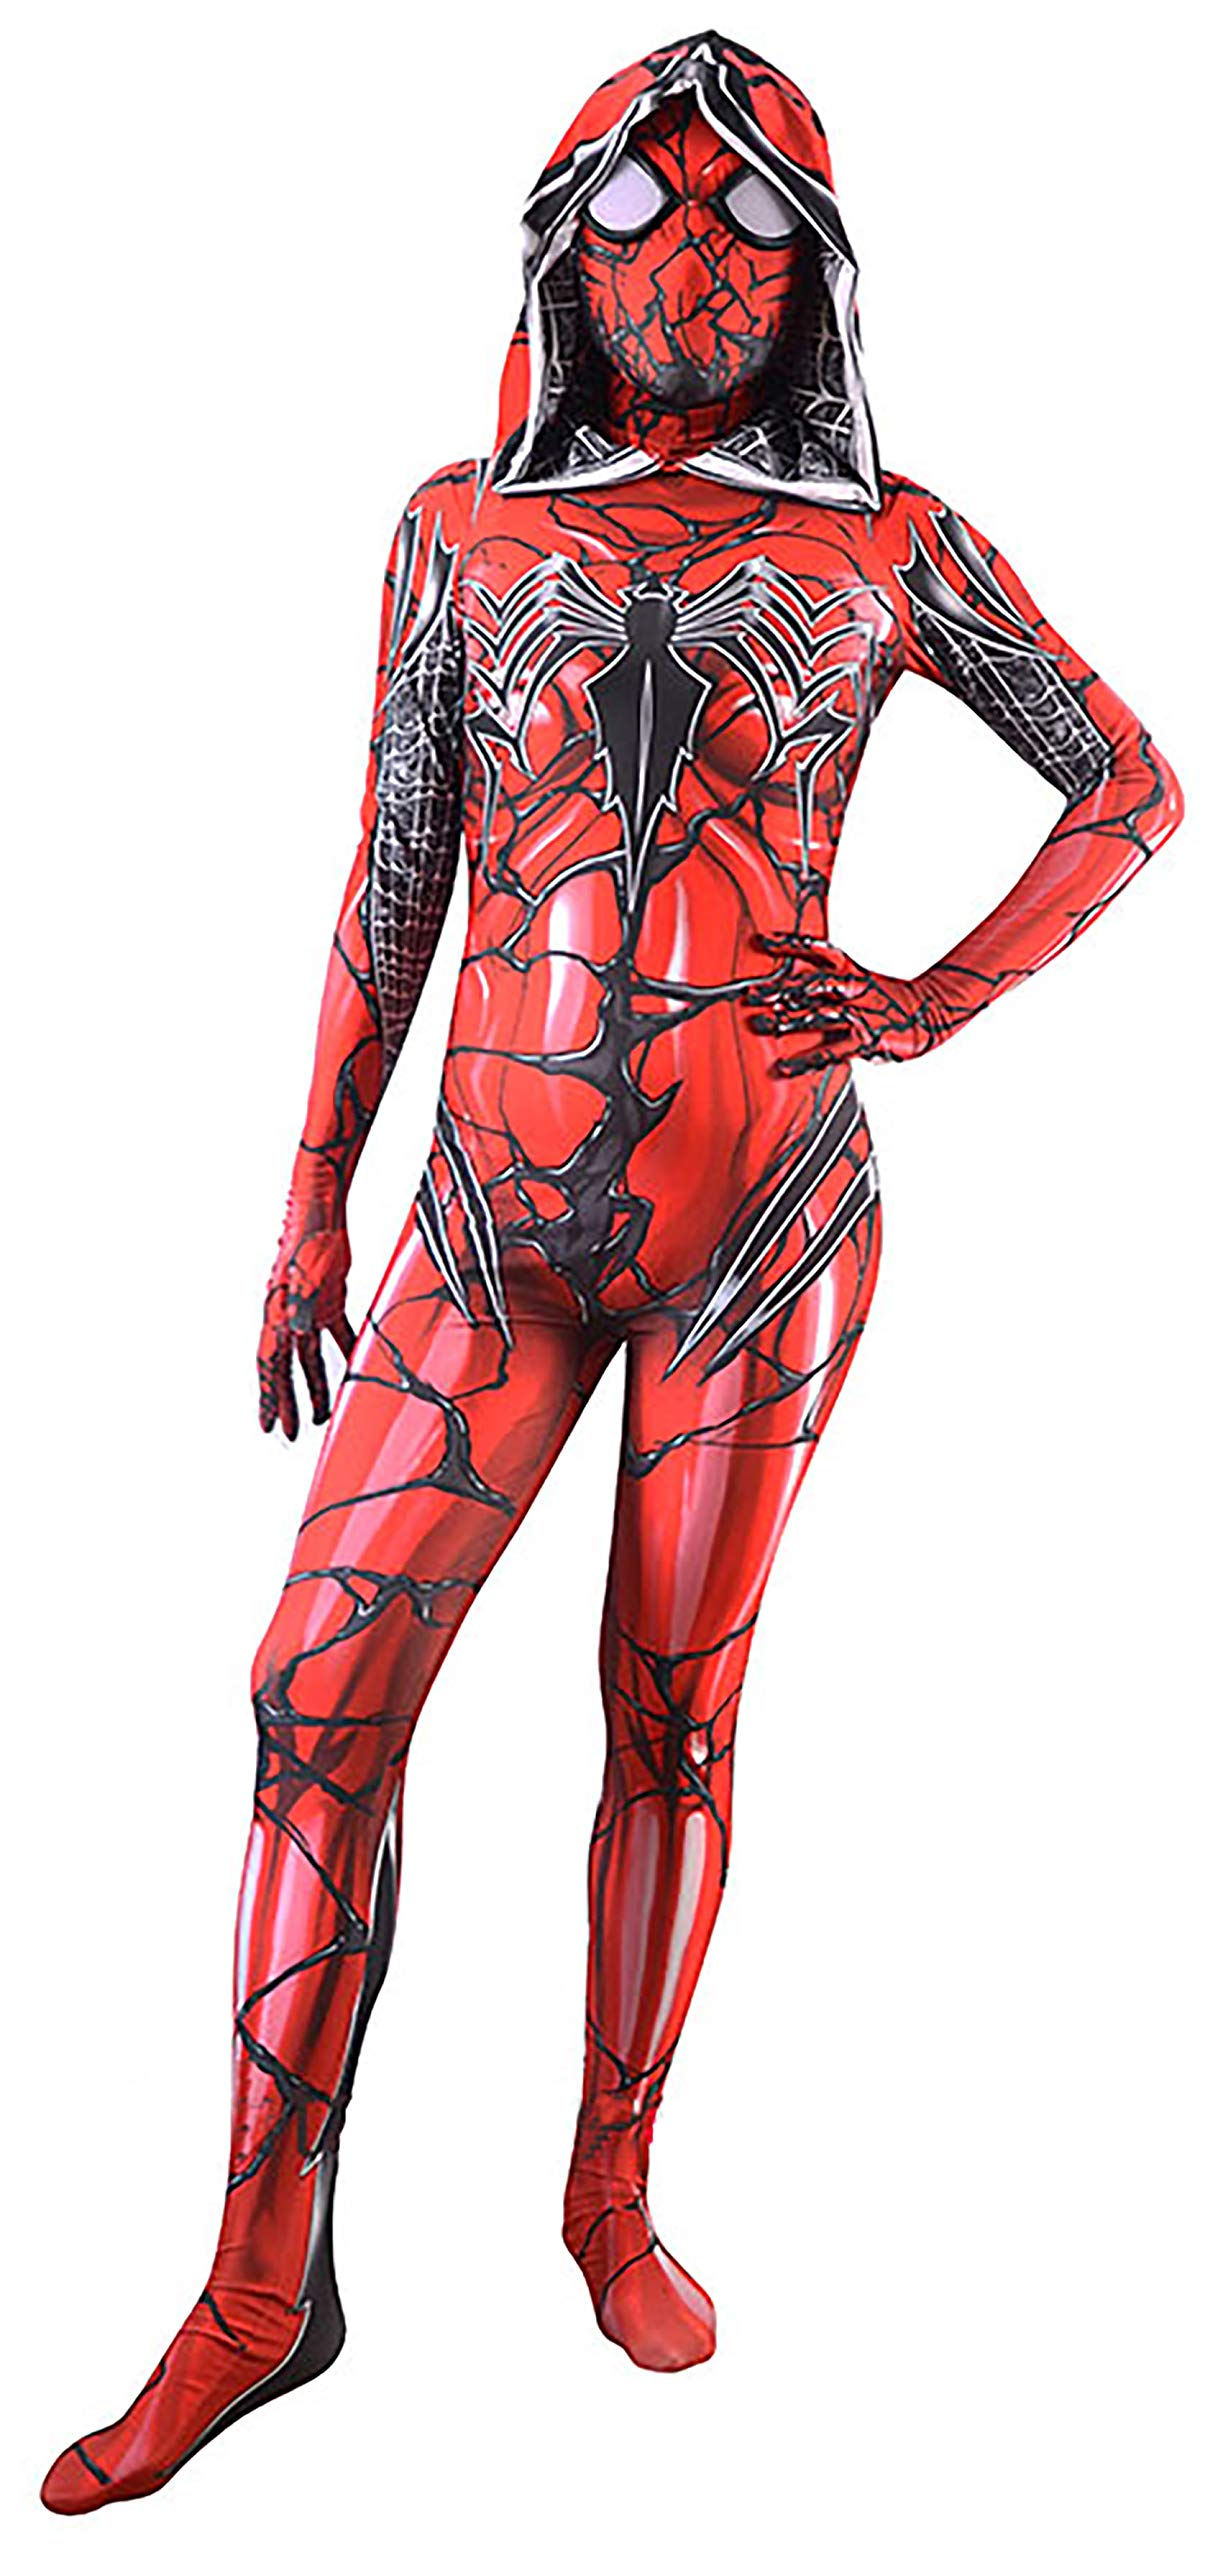 - 81y6uAKdi5L - DANNEL Unisex Spandex Onesie Adult and Kids 3D Zentai Suit Costume Cosplay Bodysuit